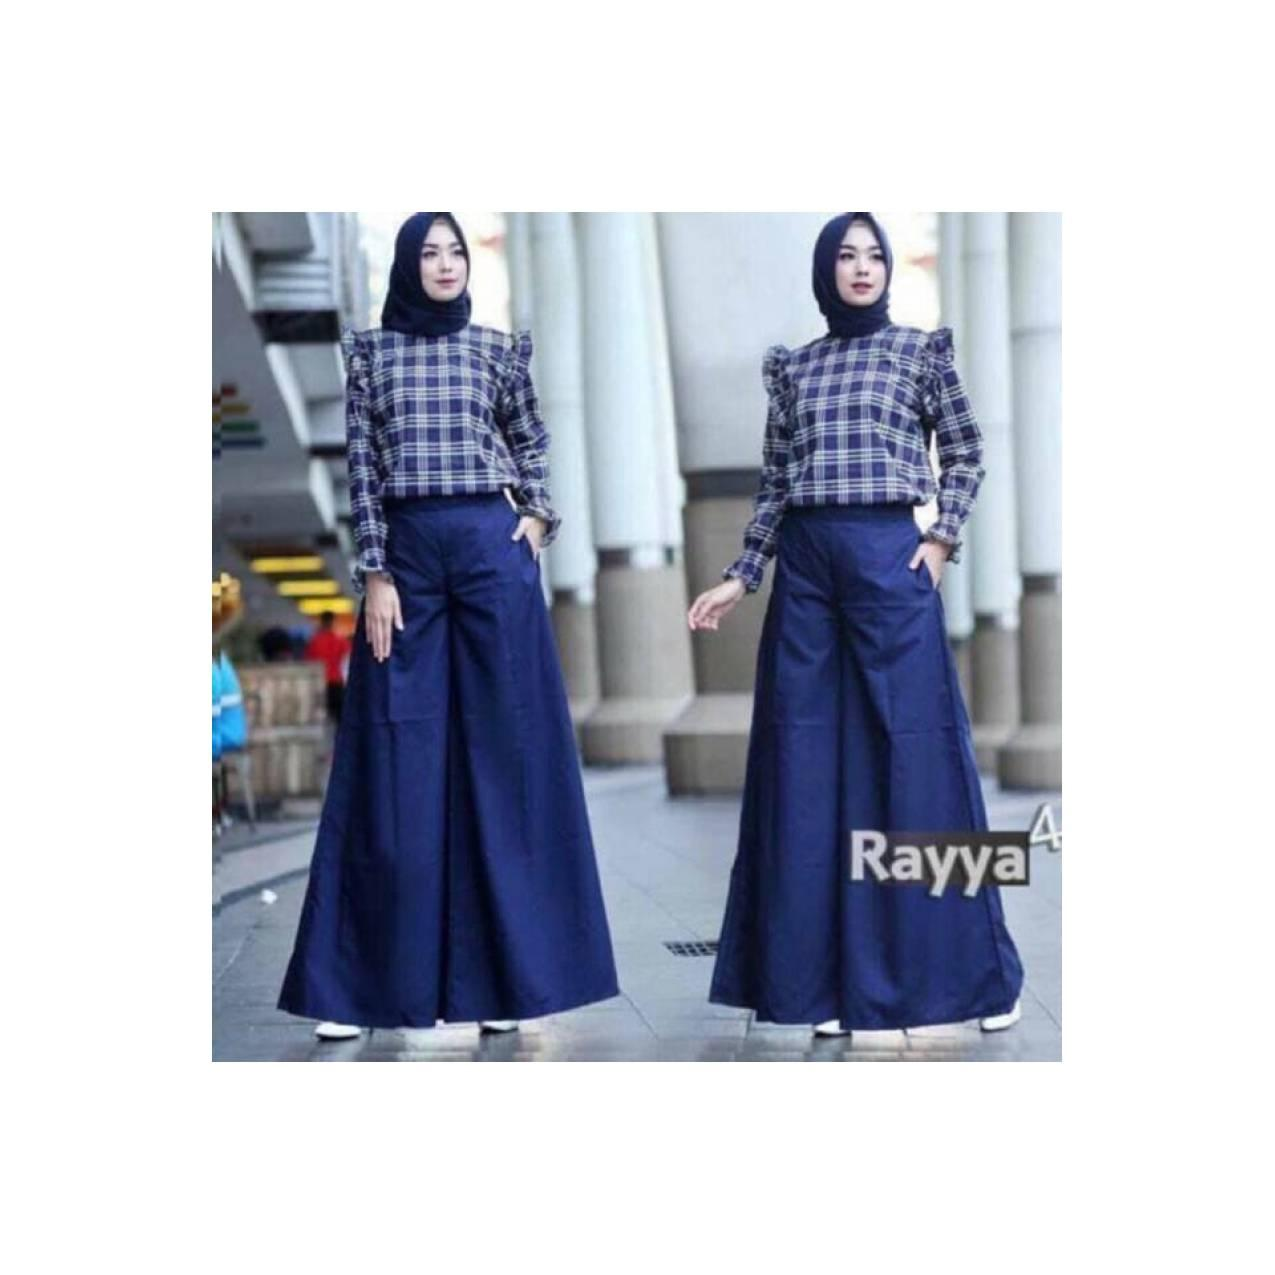 TERLARIS AB SALE ABISIN STOK ---- RAYYA SET 3 IN 1 NEW